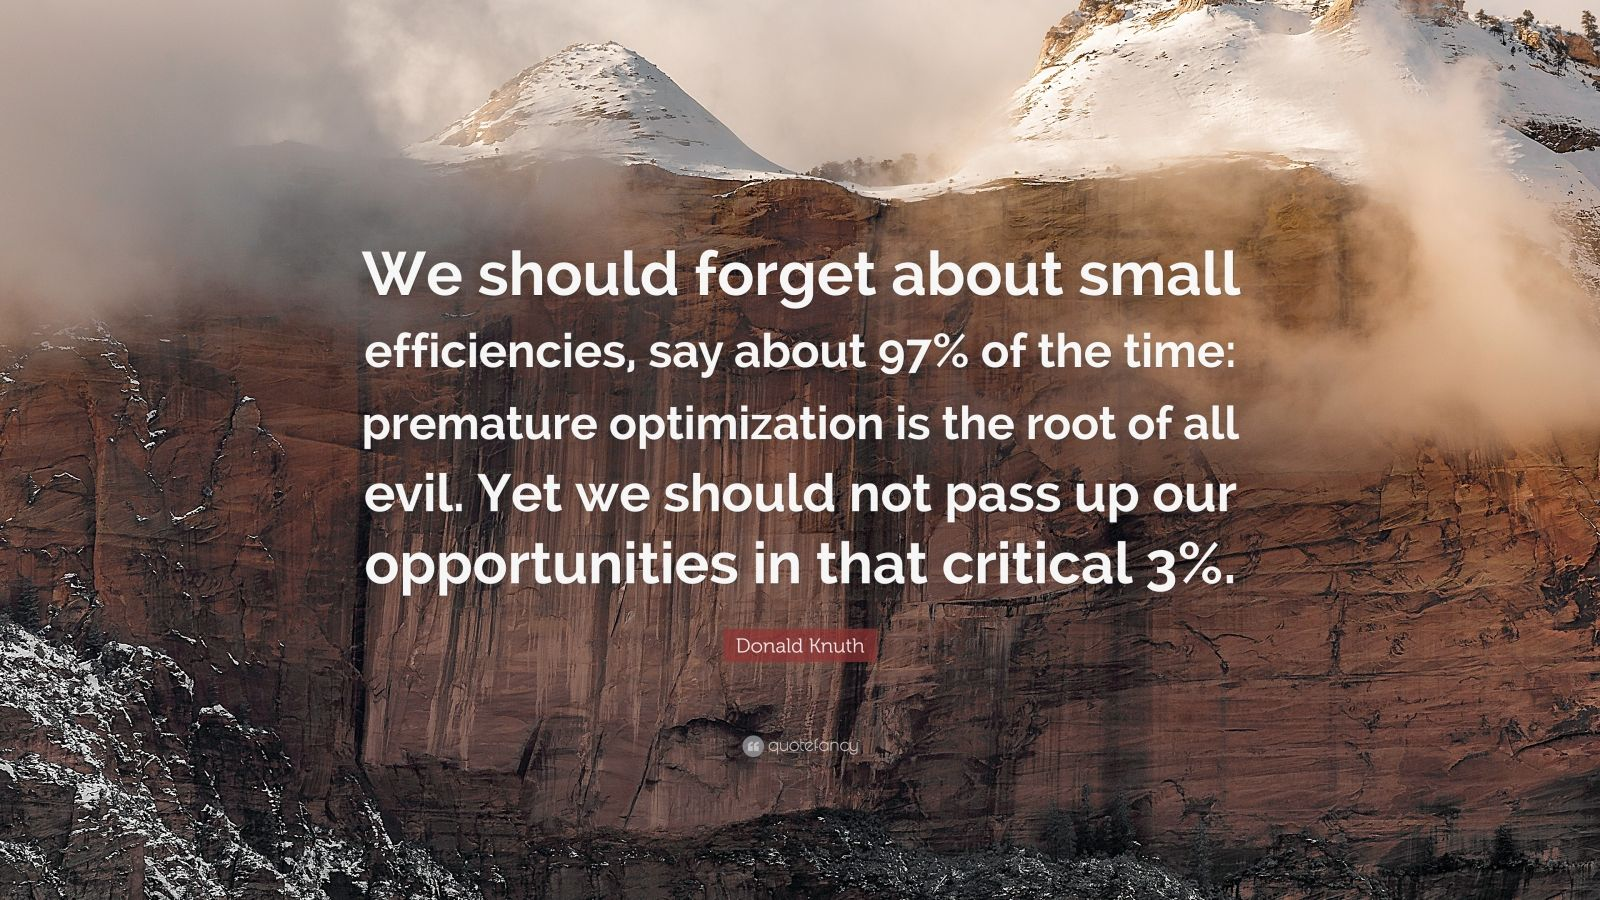 "Donald Knuth Quote: ""We should forget about small efficiencies, say about 97% of the time: premature optimization is the root of all evil. Yet we should not pass up our opportunities in that critical 3%."""